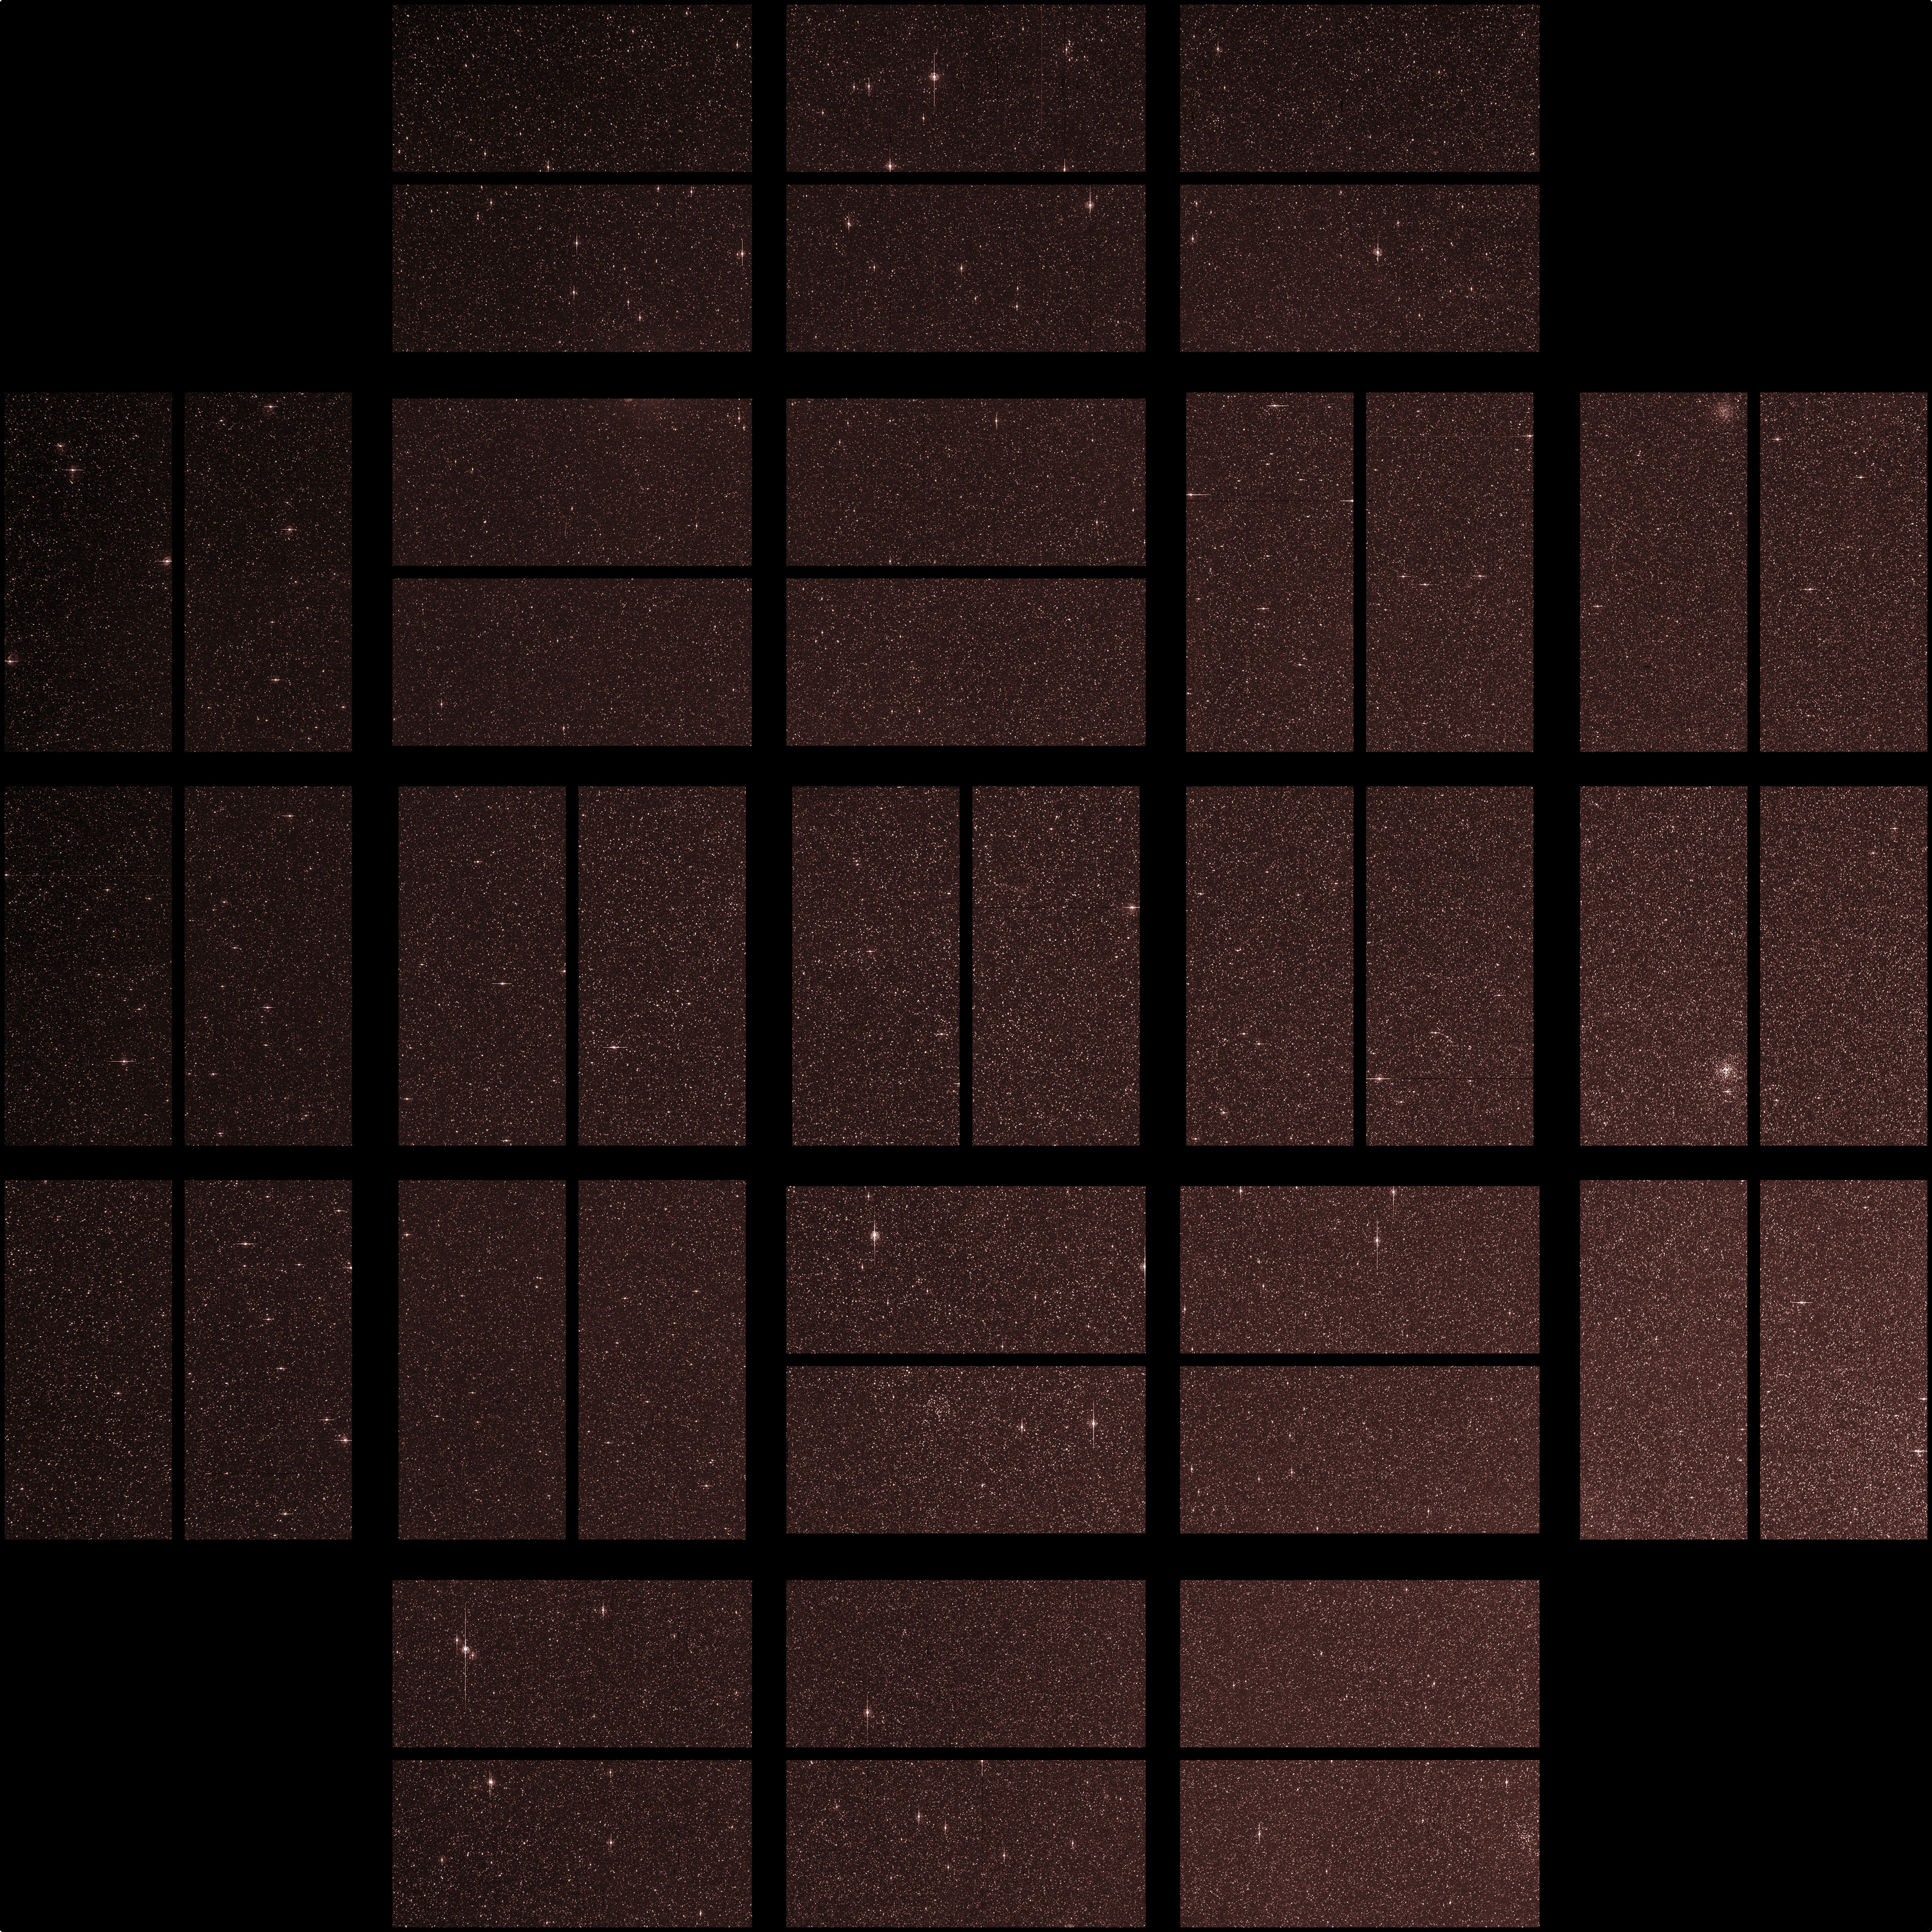 Full Focal Plane Image (First Light for Kepler Photometer)